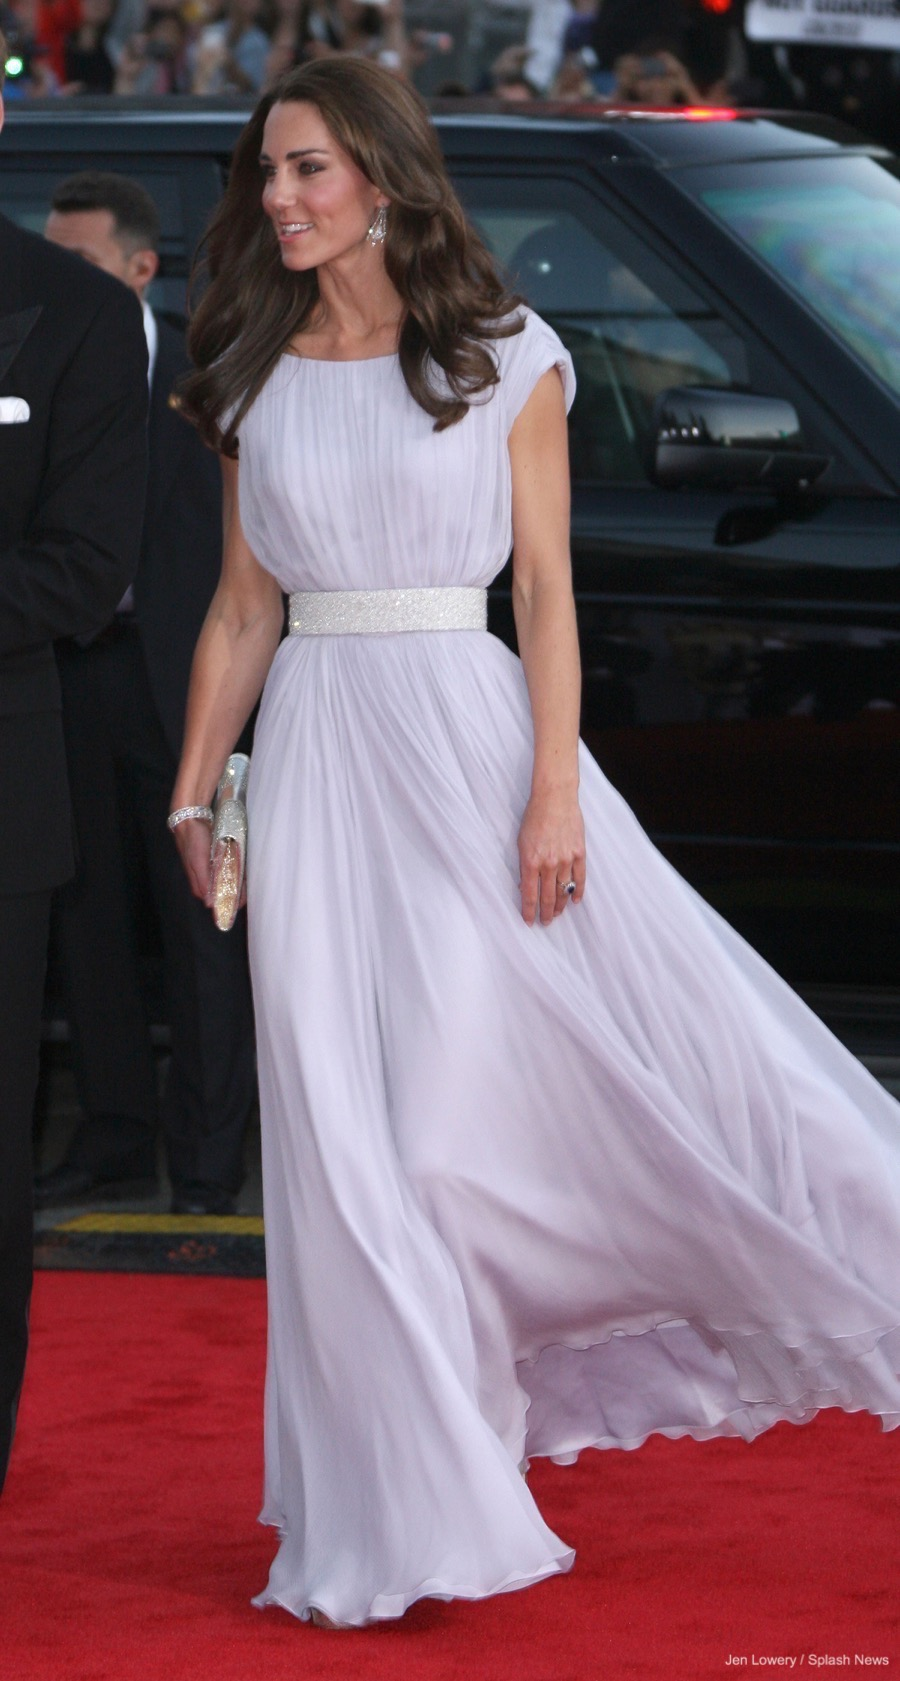 c71b992370fc Kate Middleton wearing the lilac purple Alexander McQueen gown to the  BAFTAs in 2011. Jimmy Choo Vamp Sandals